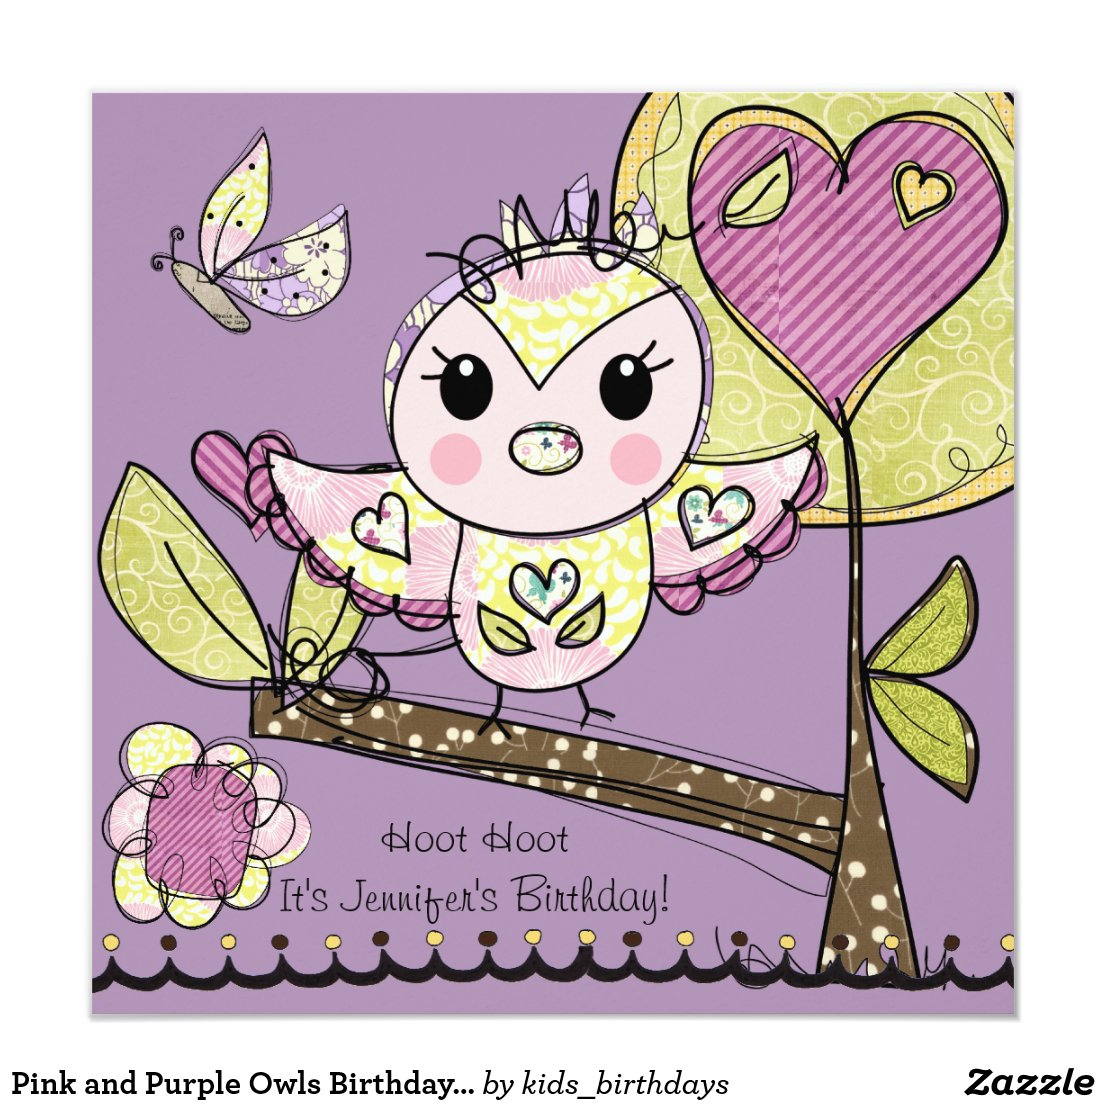 Pink and Purple Owls Birthday Invitation